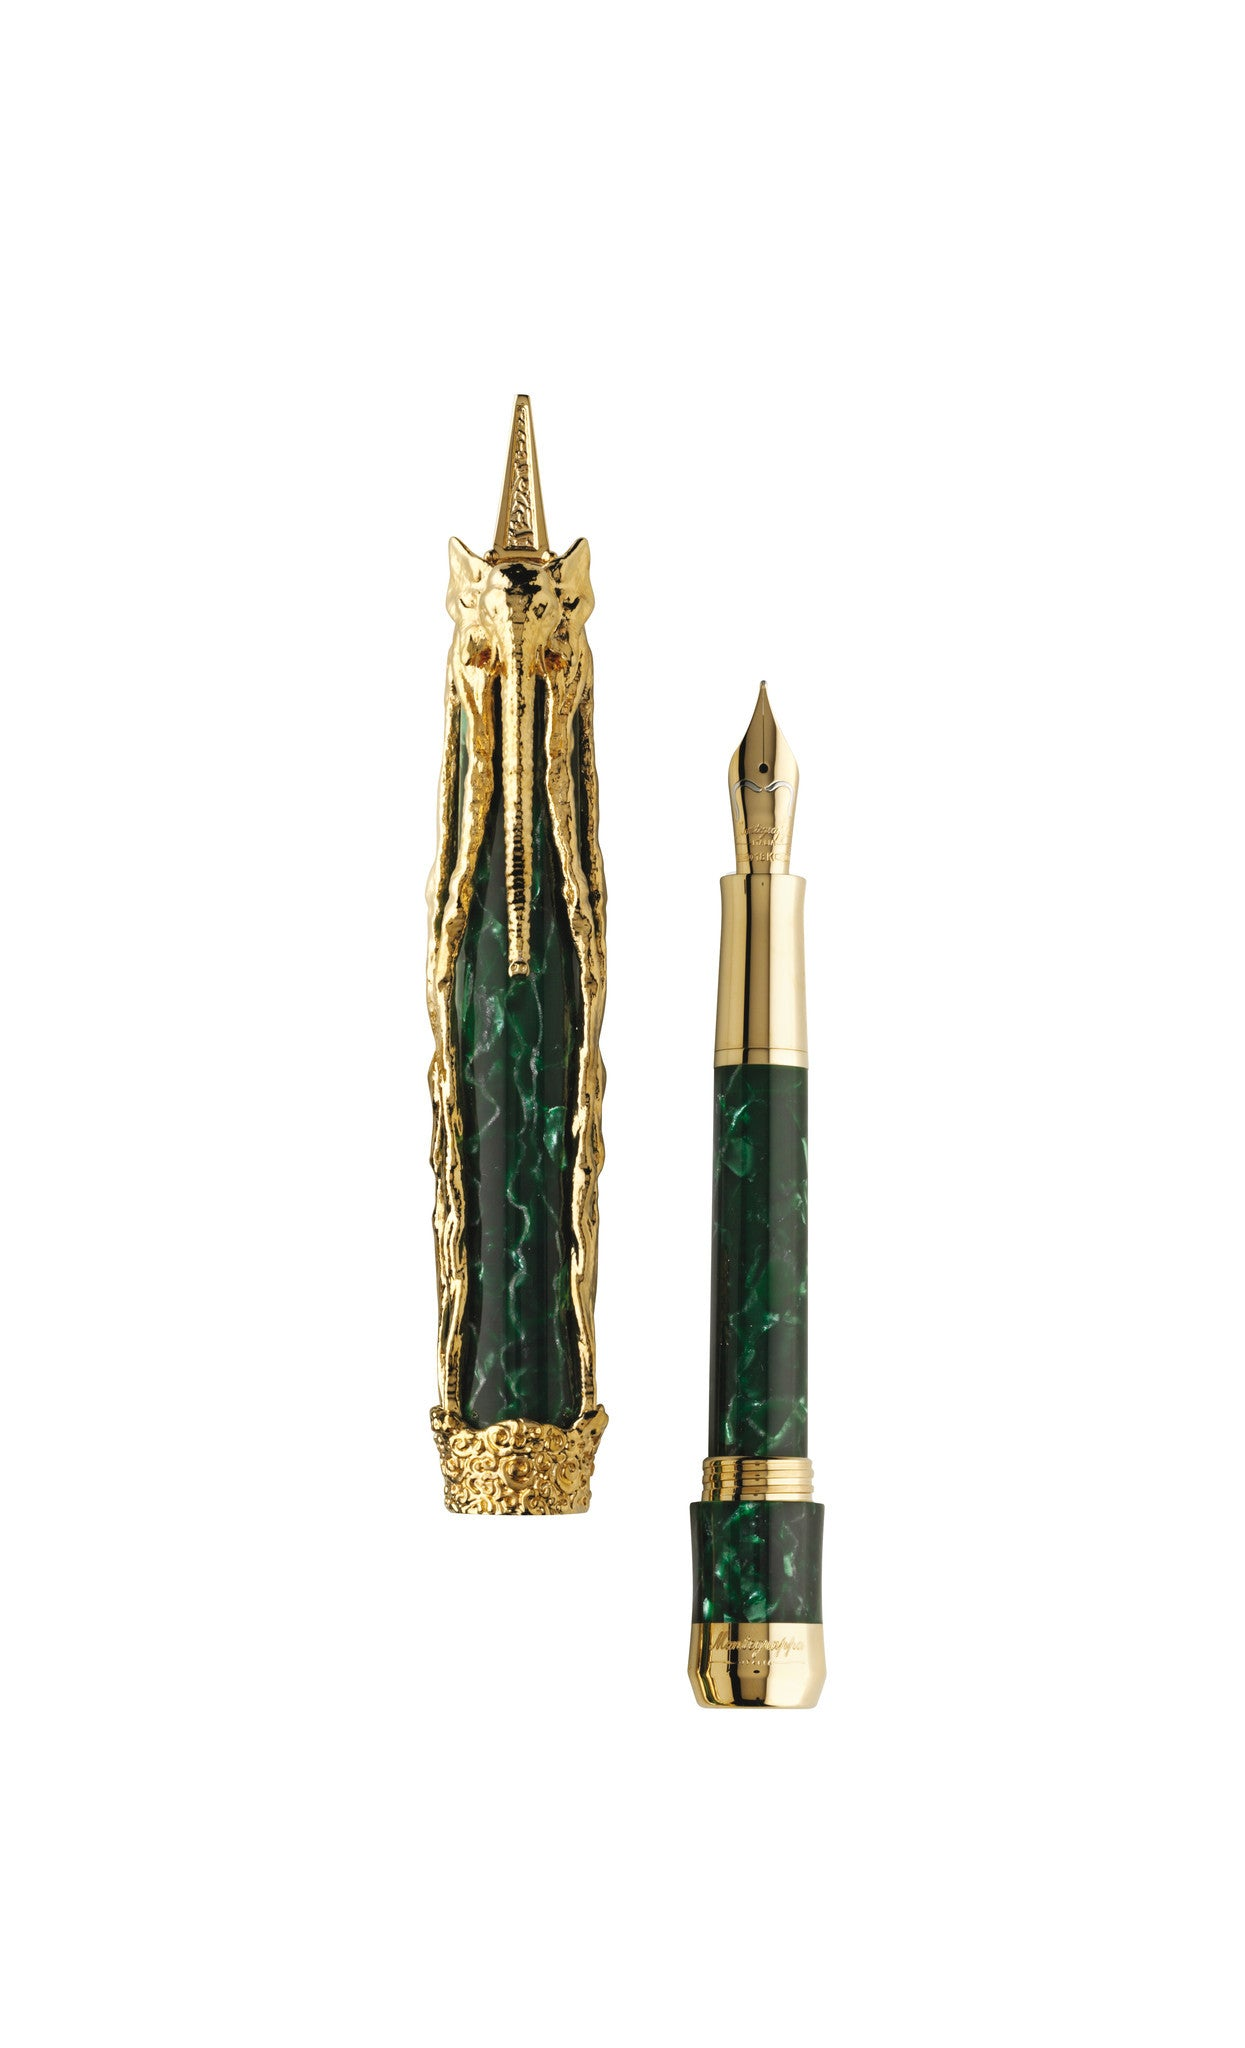 7a4ecd2931c Montegrappa Salvador Dali Fountain Pen - Gold - Montegrappa UK